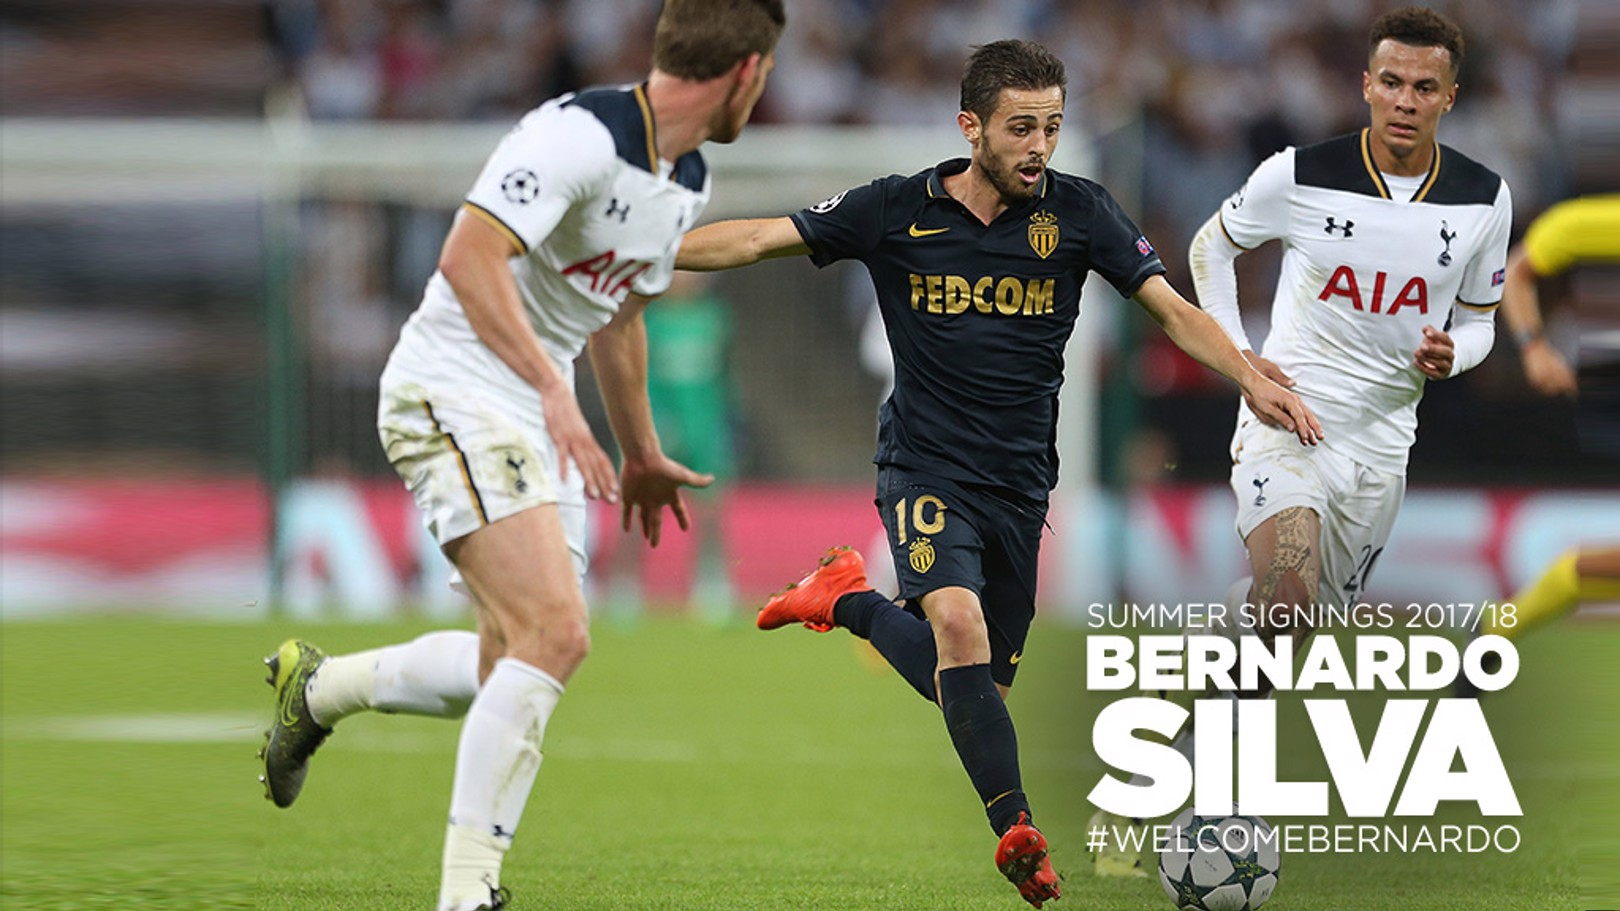 FACTFILE: Ten things you need to know about Bernardo Silva